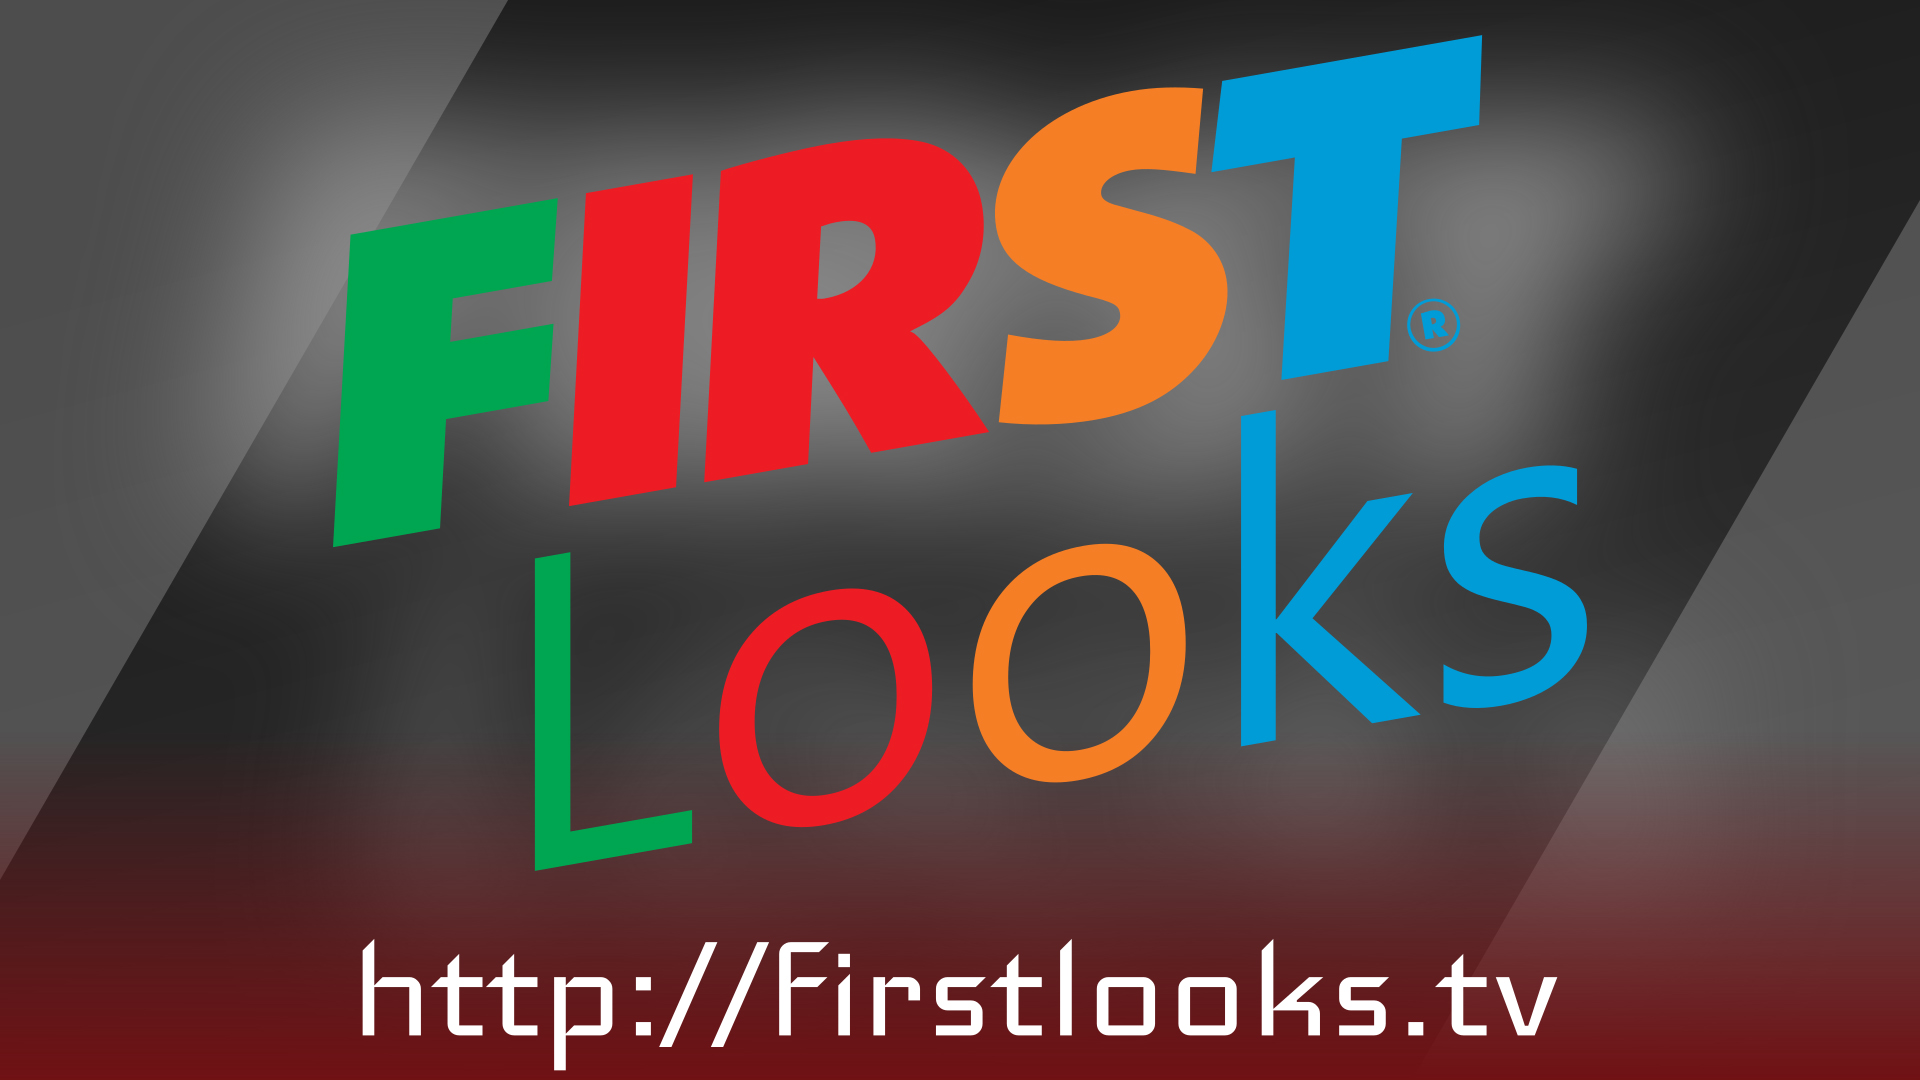 FIRST Looks (Video)